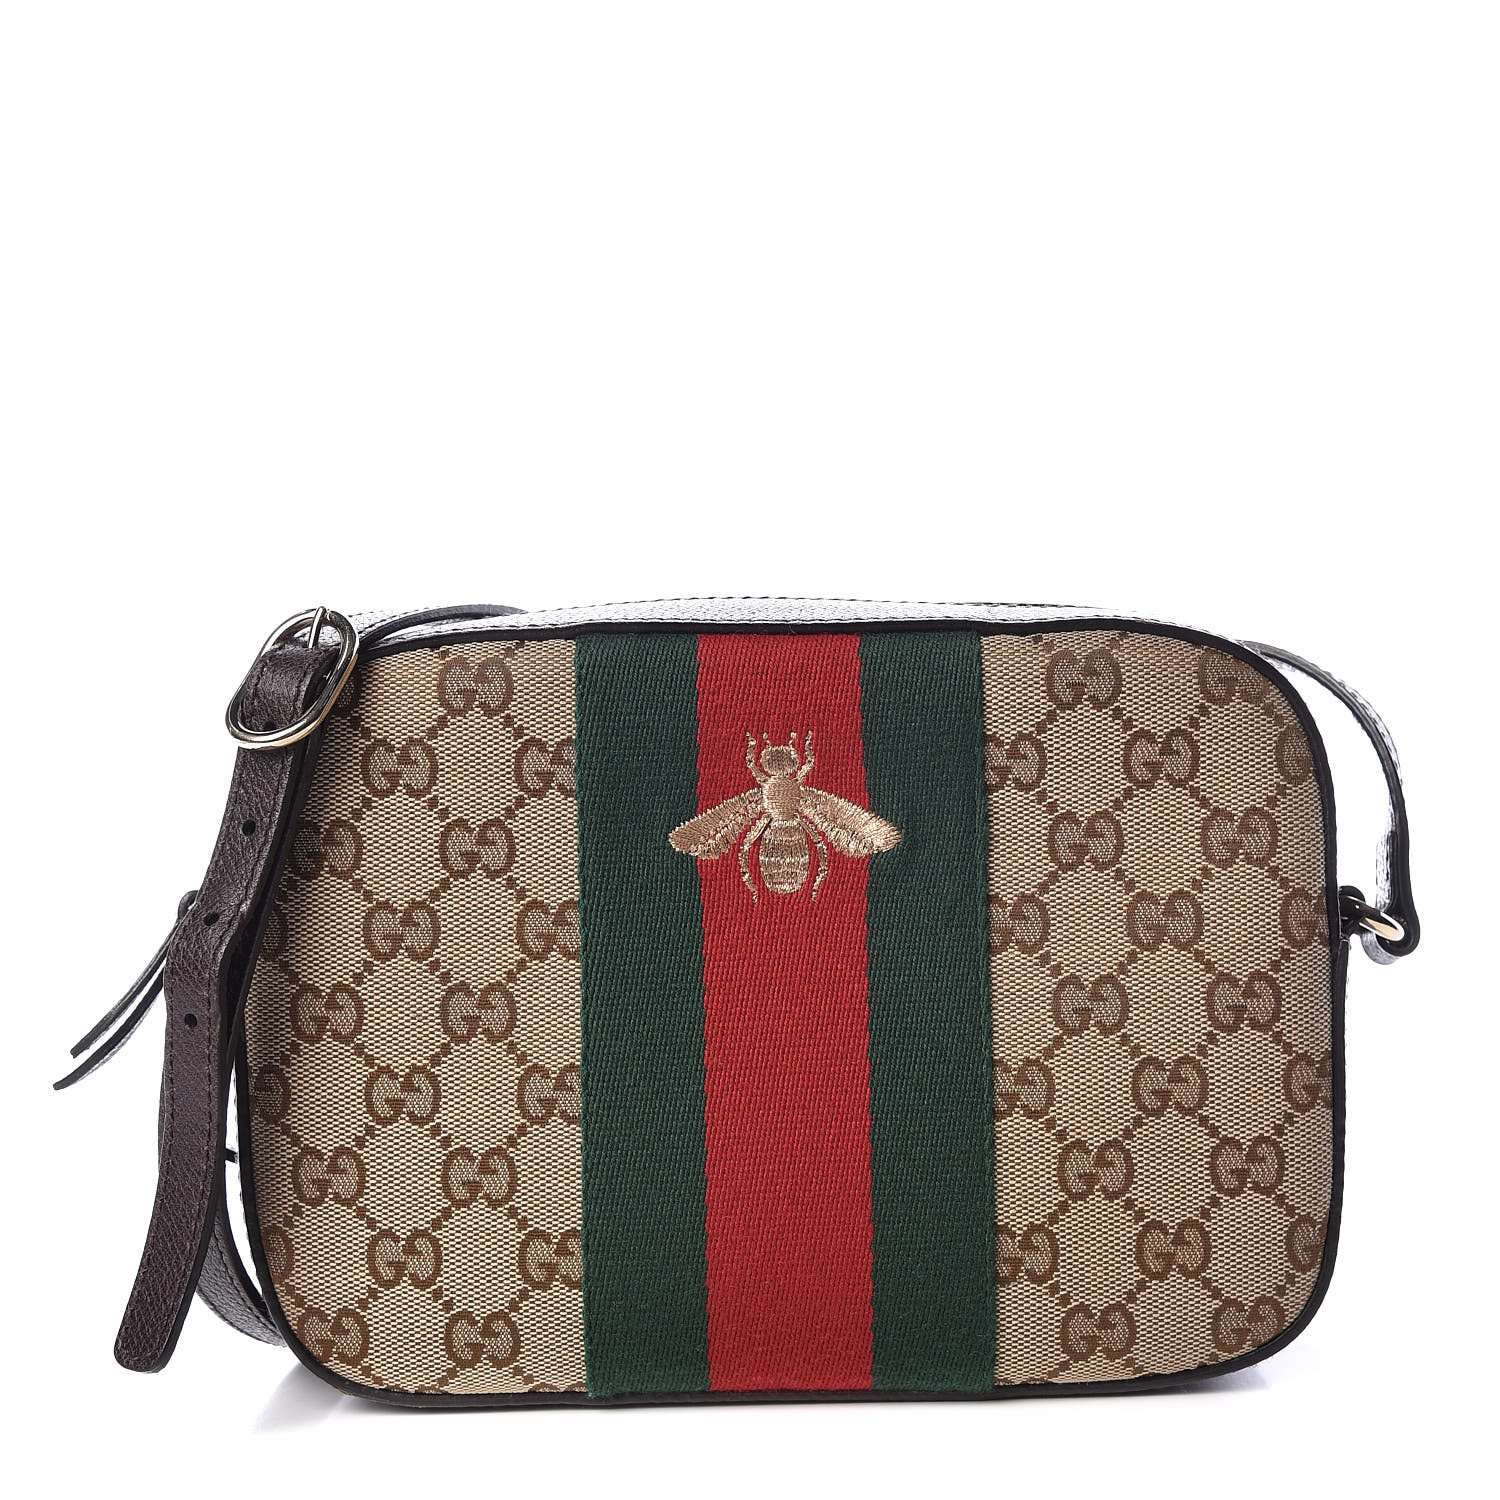 GUCCI Monogram GG Supreme Web Small Webby Bee Shoulder Bag Dark Brown